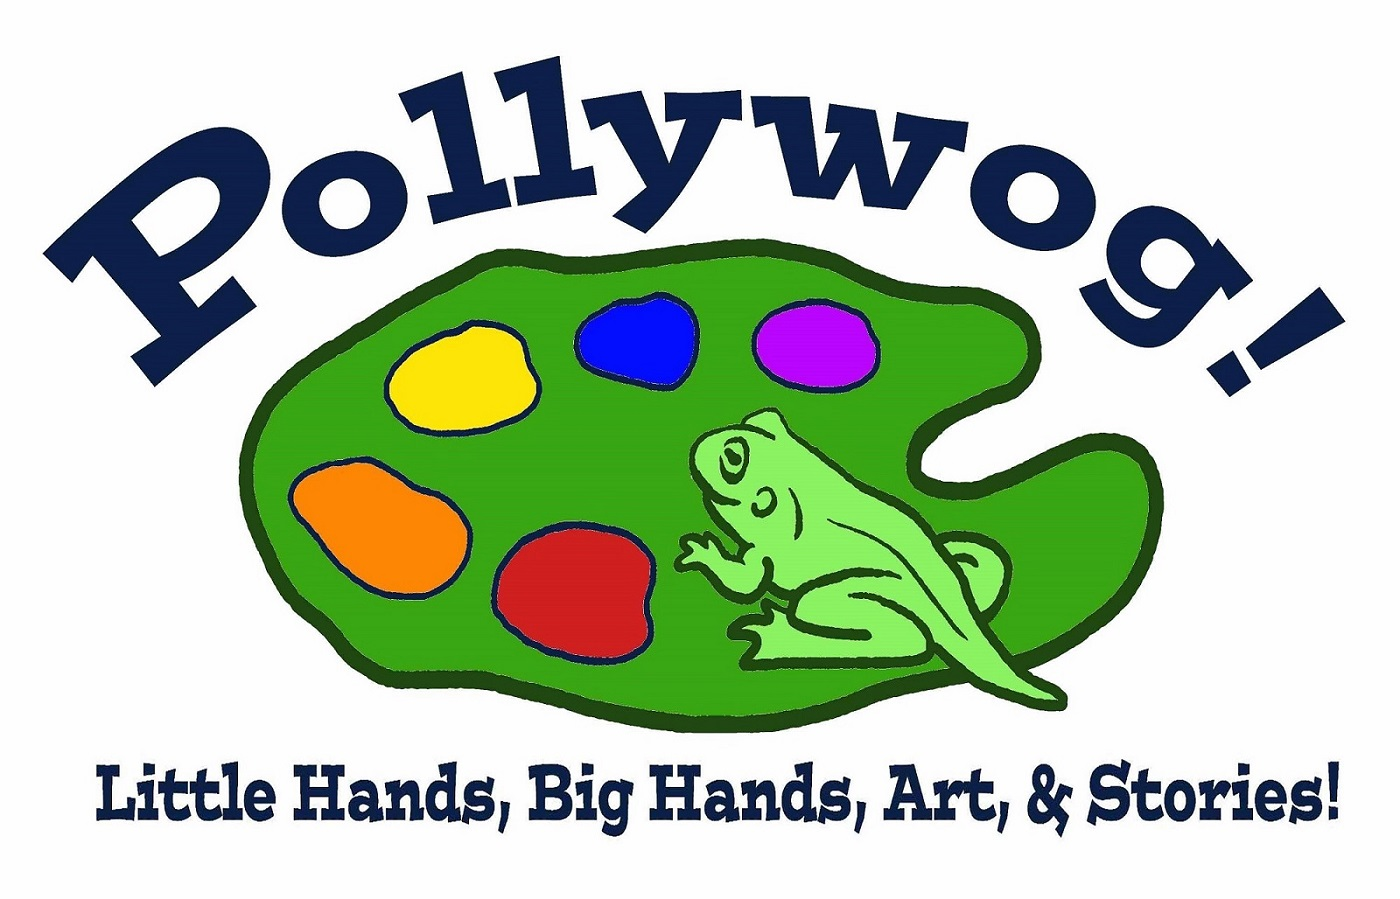 Pollywog logo of frog on lily pad with multicolored circles